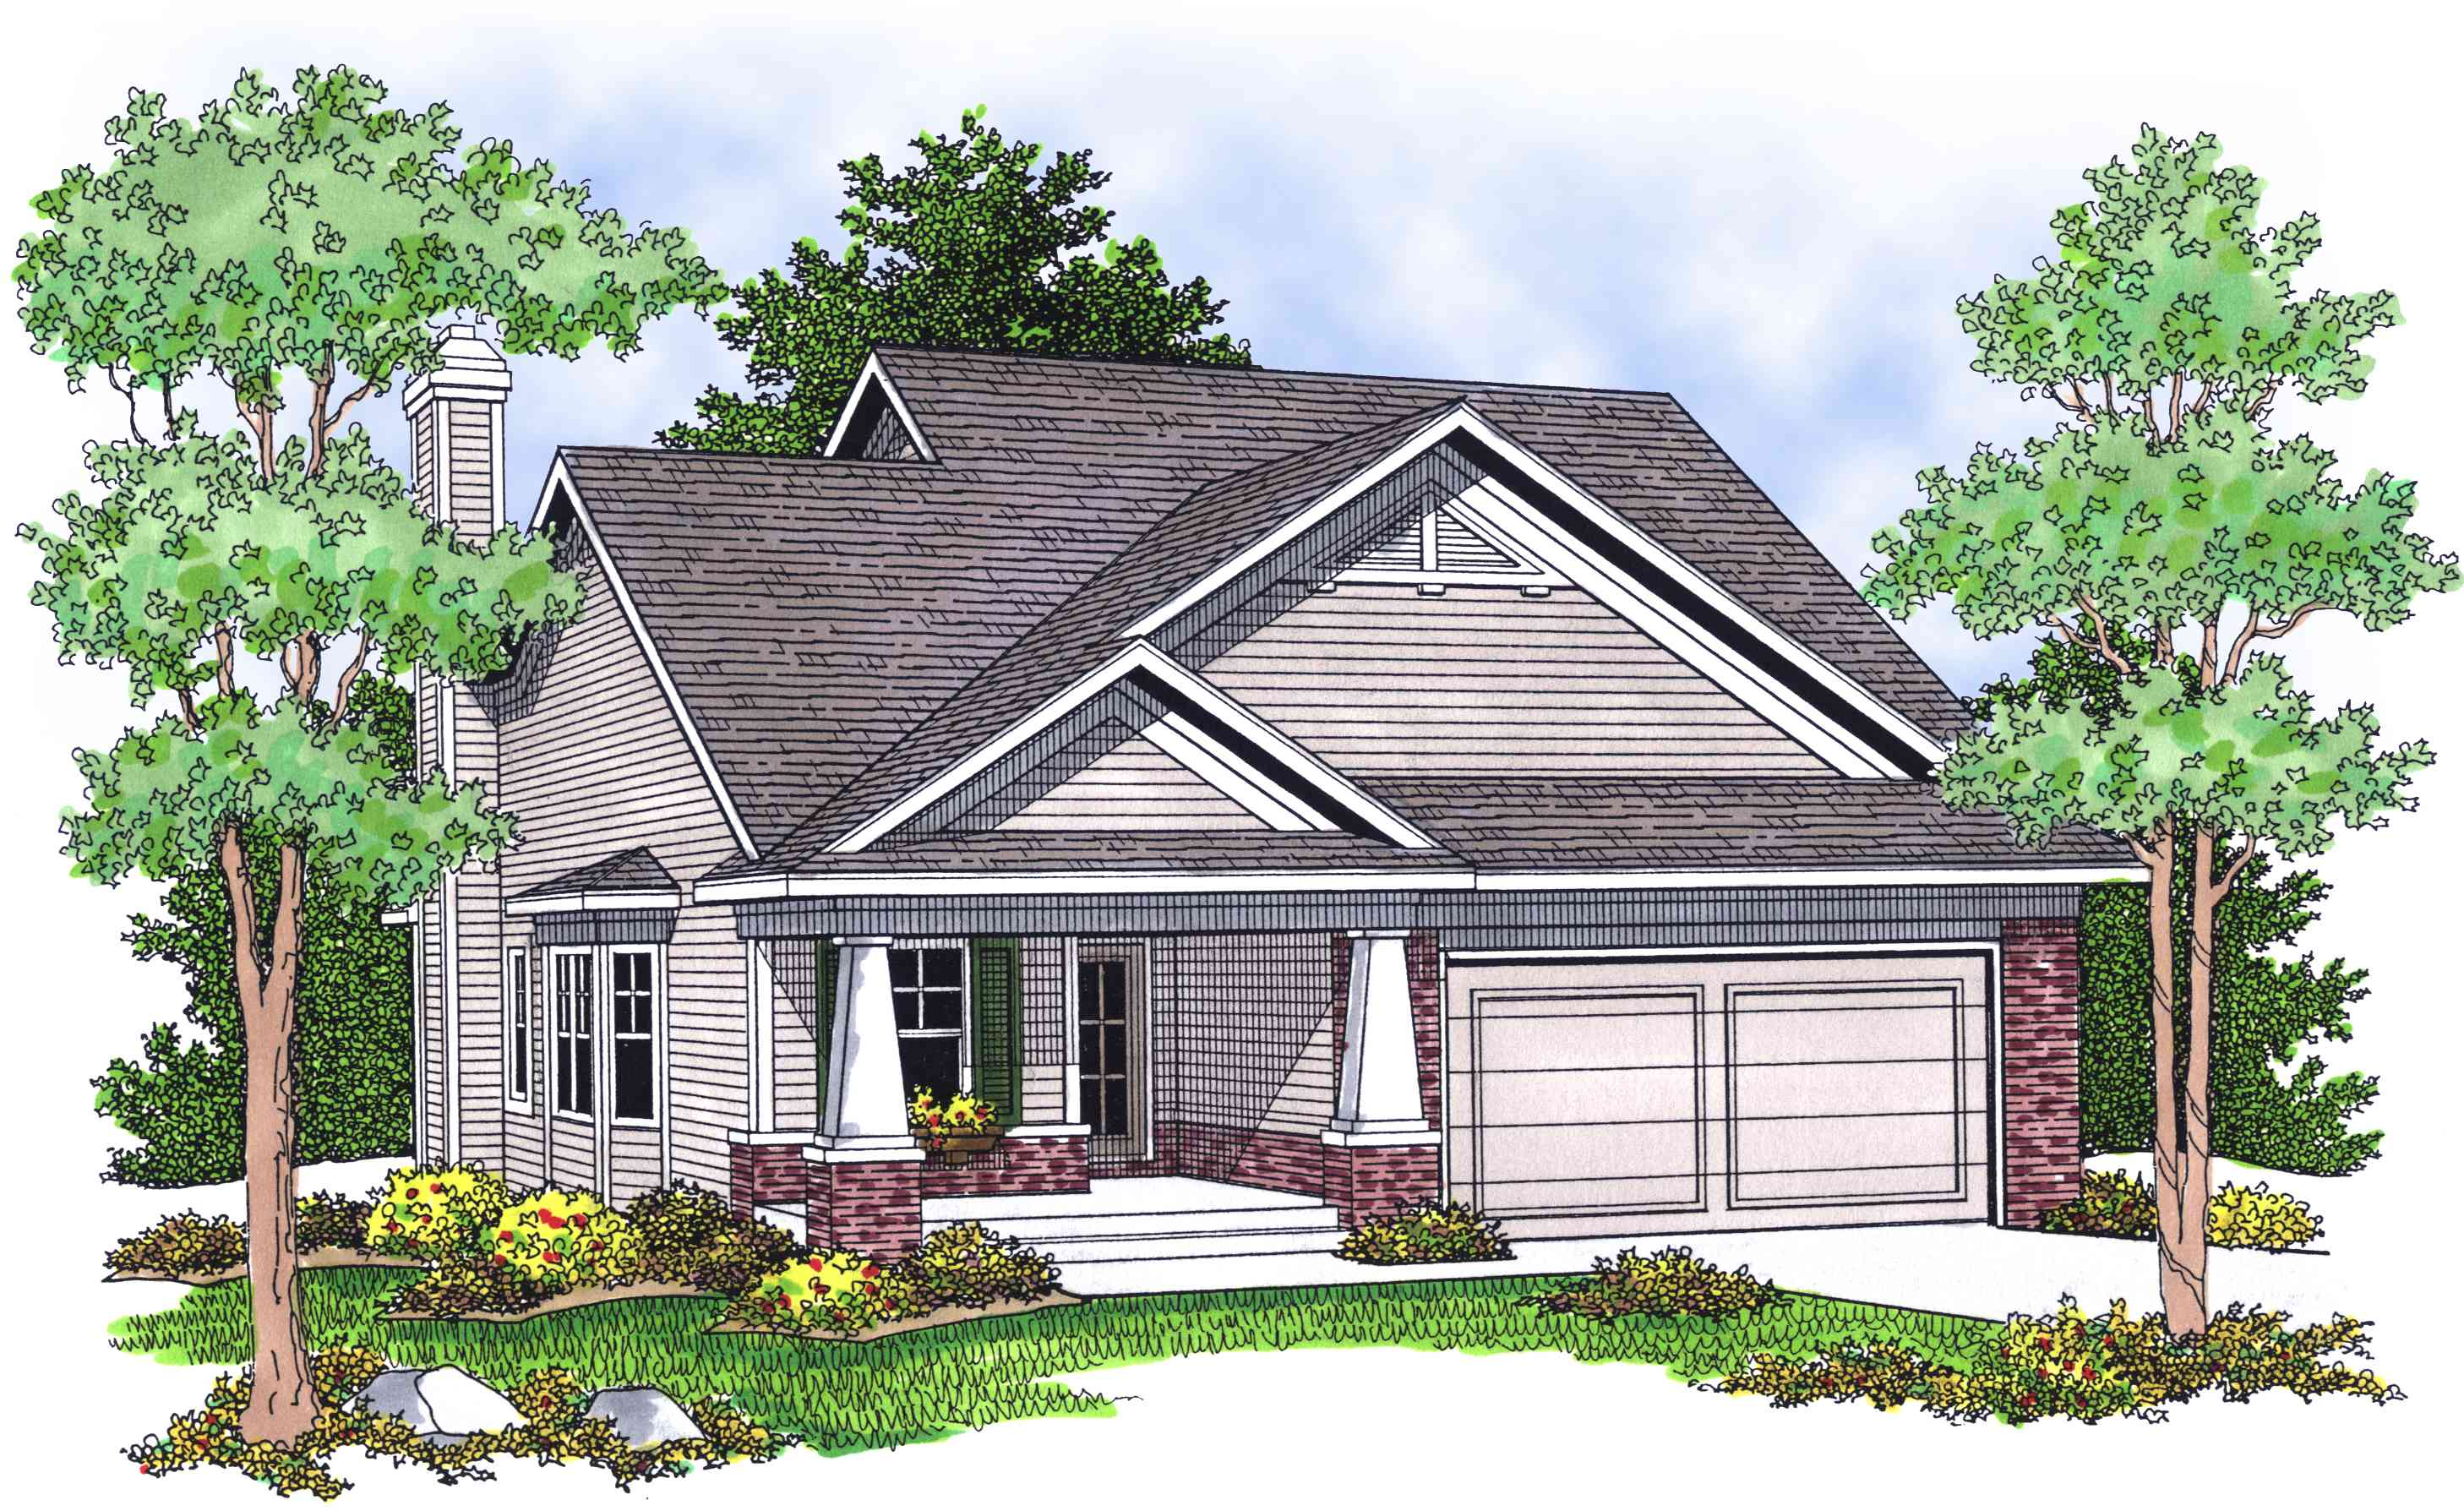 Quaint and charming country cottage 8997ah 1st floor for Charming house plans